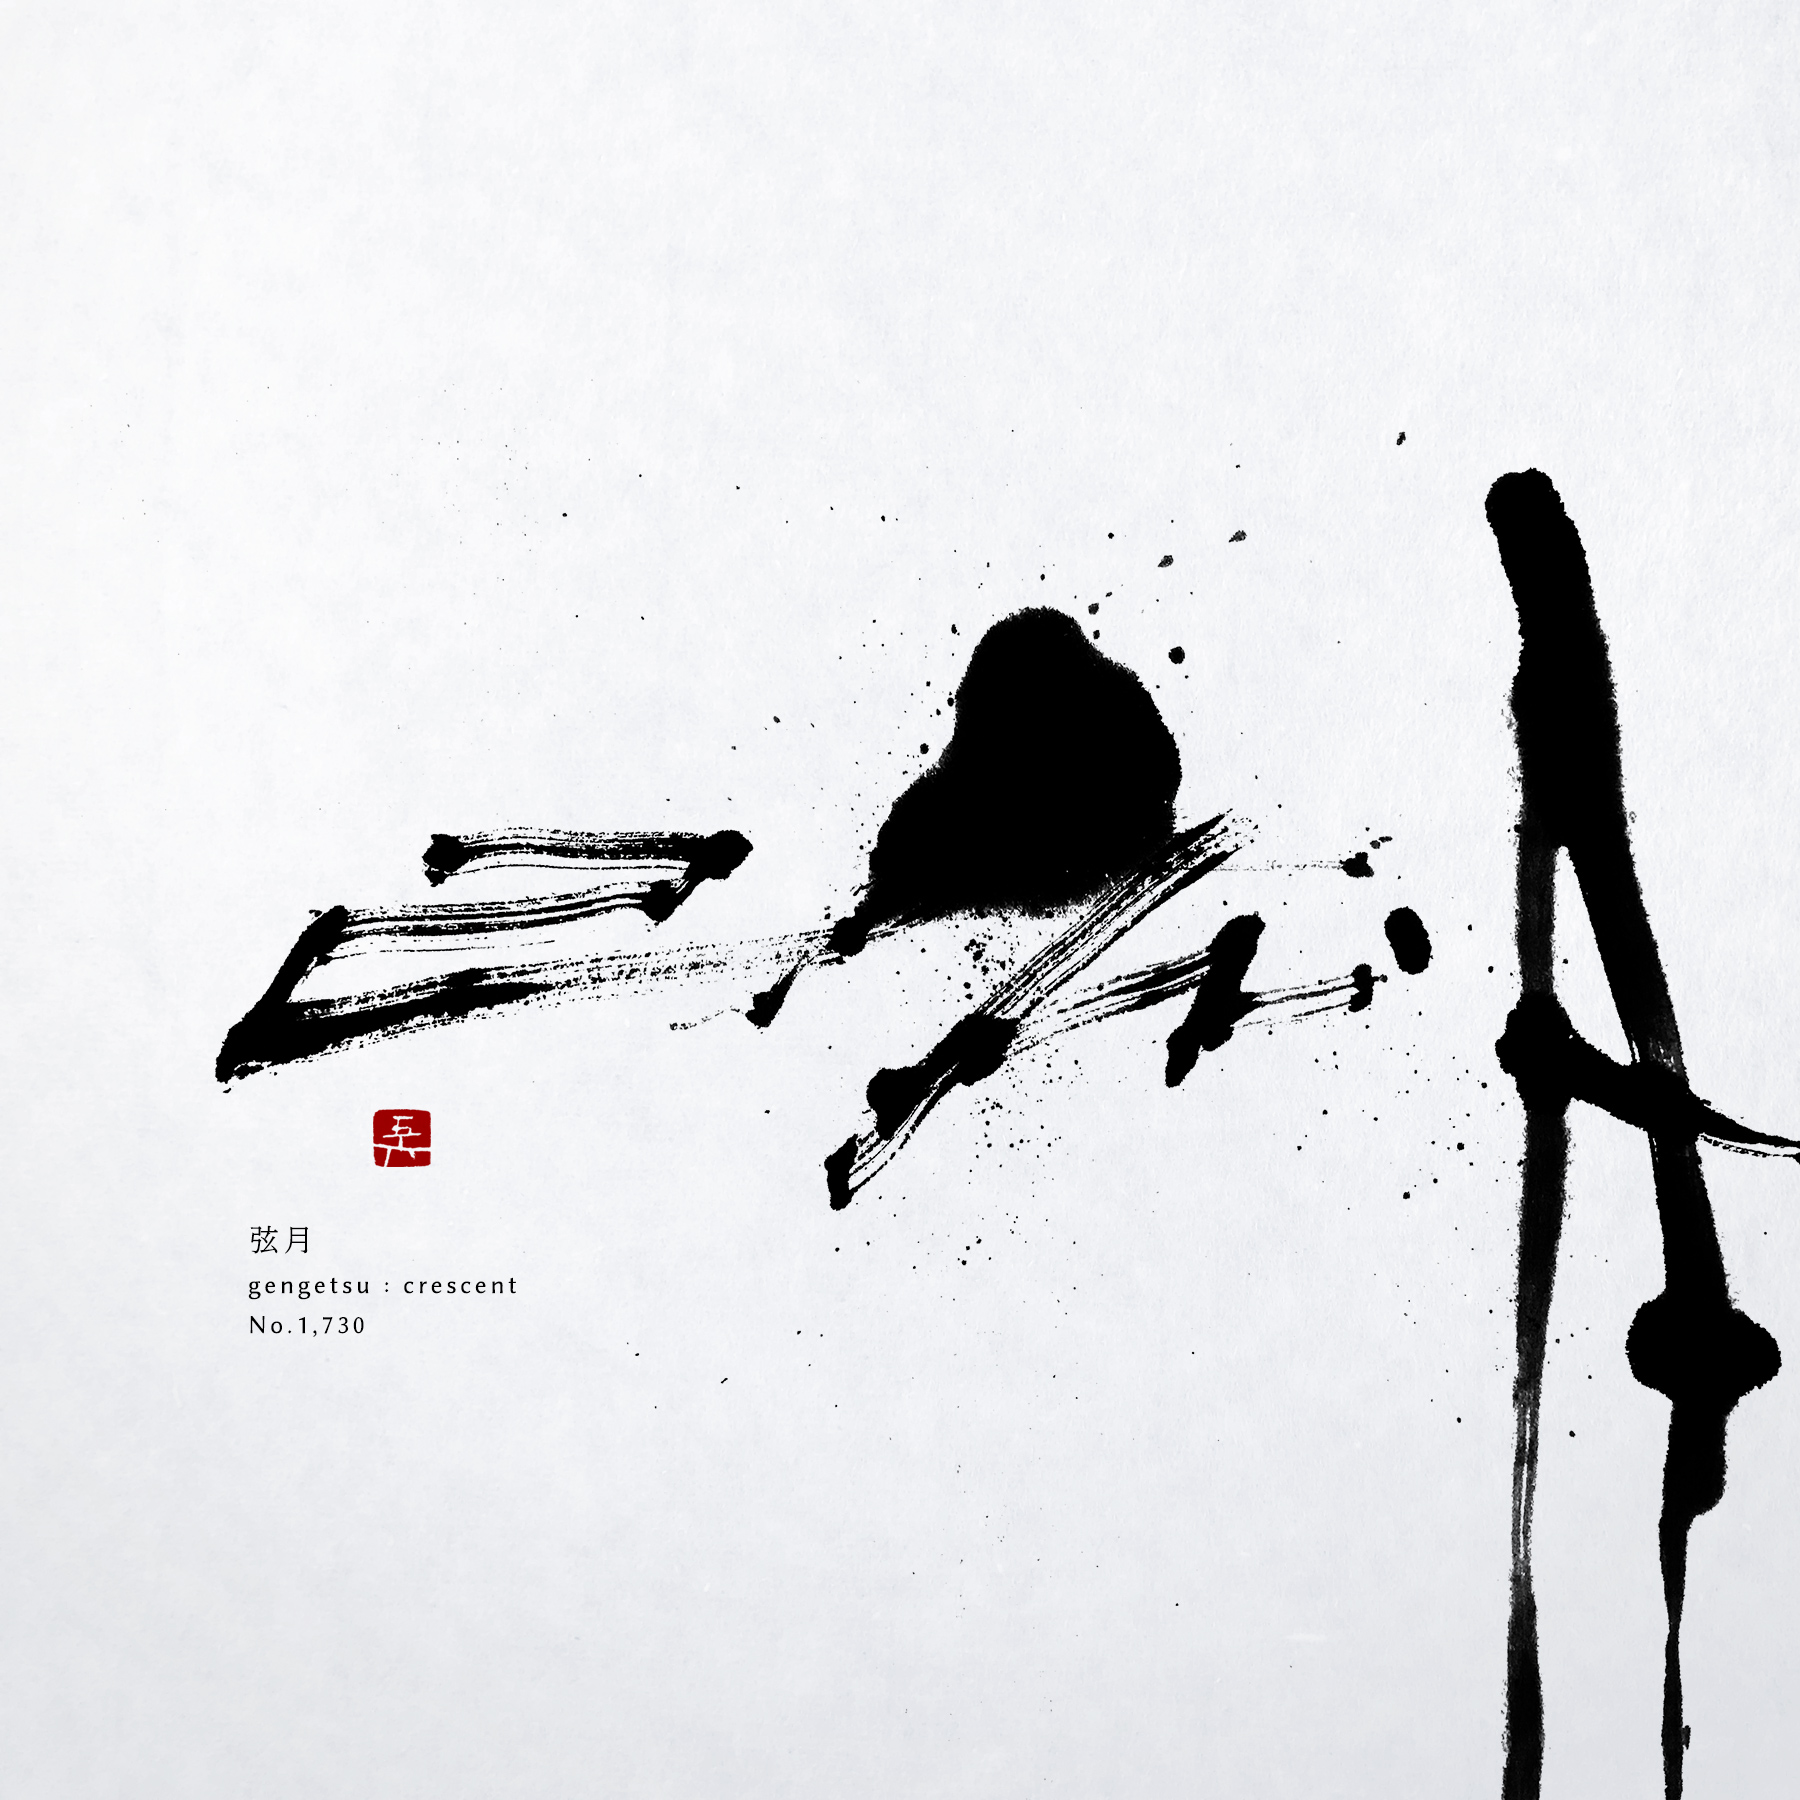 弦月 | crescent 書道作品 japaneseart japanese calligraphy 書家 田川悟郎 Goroh Tagawa